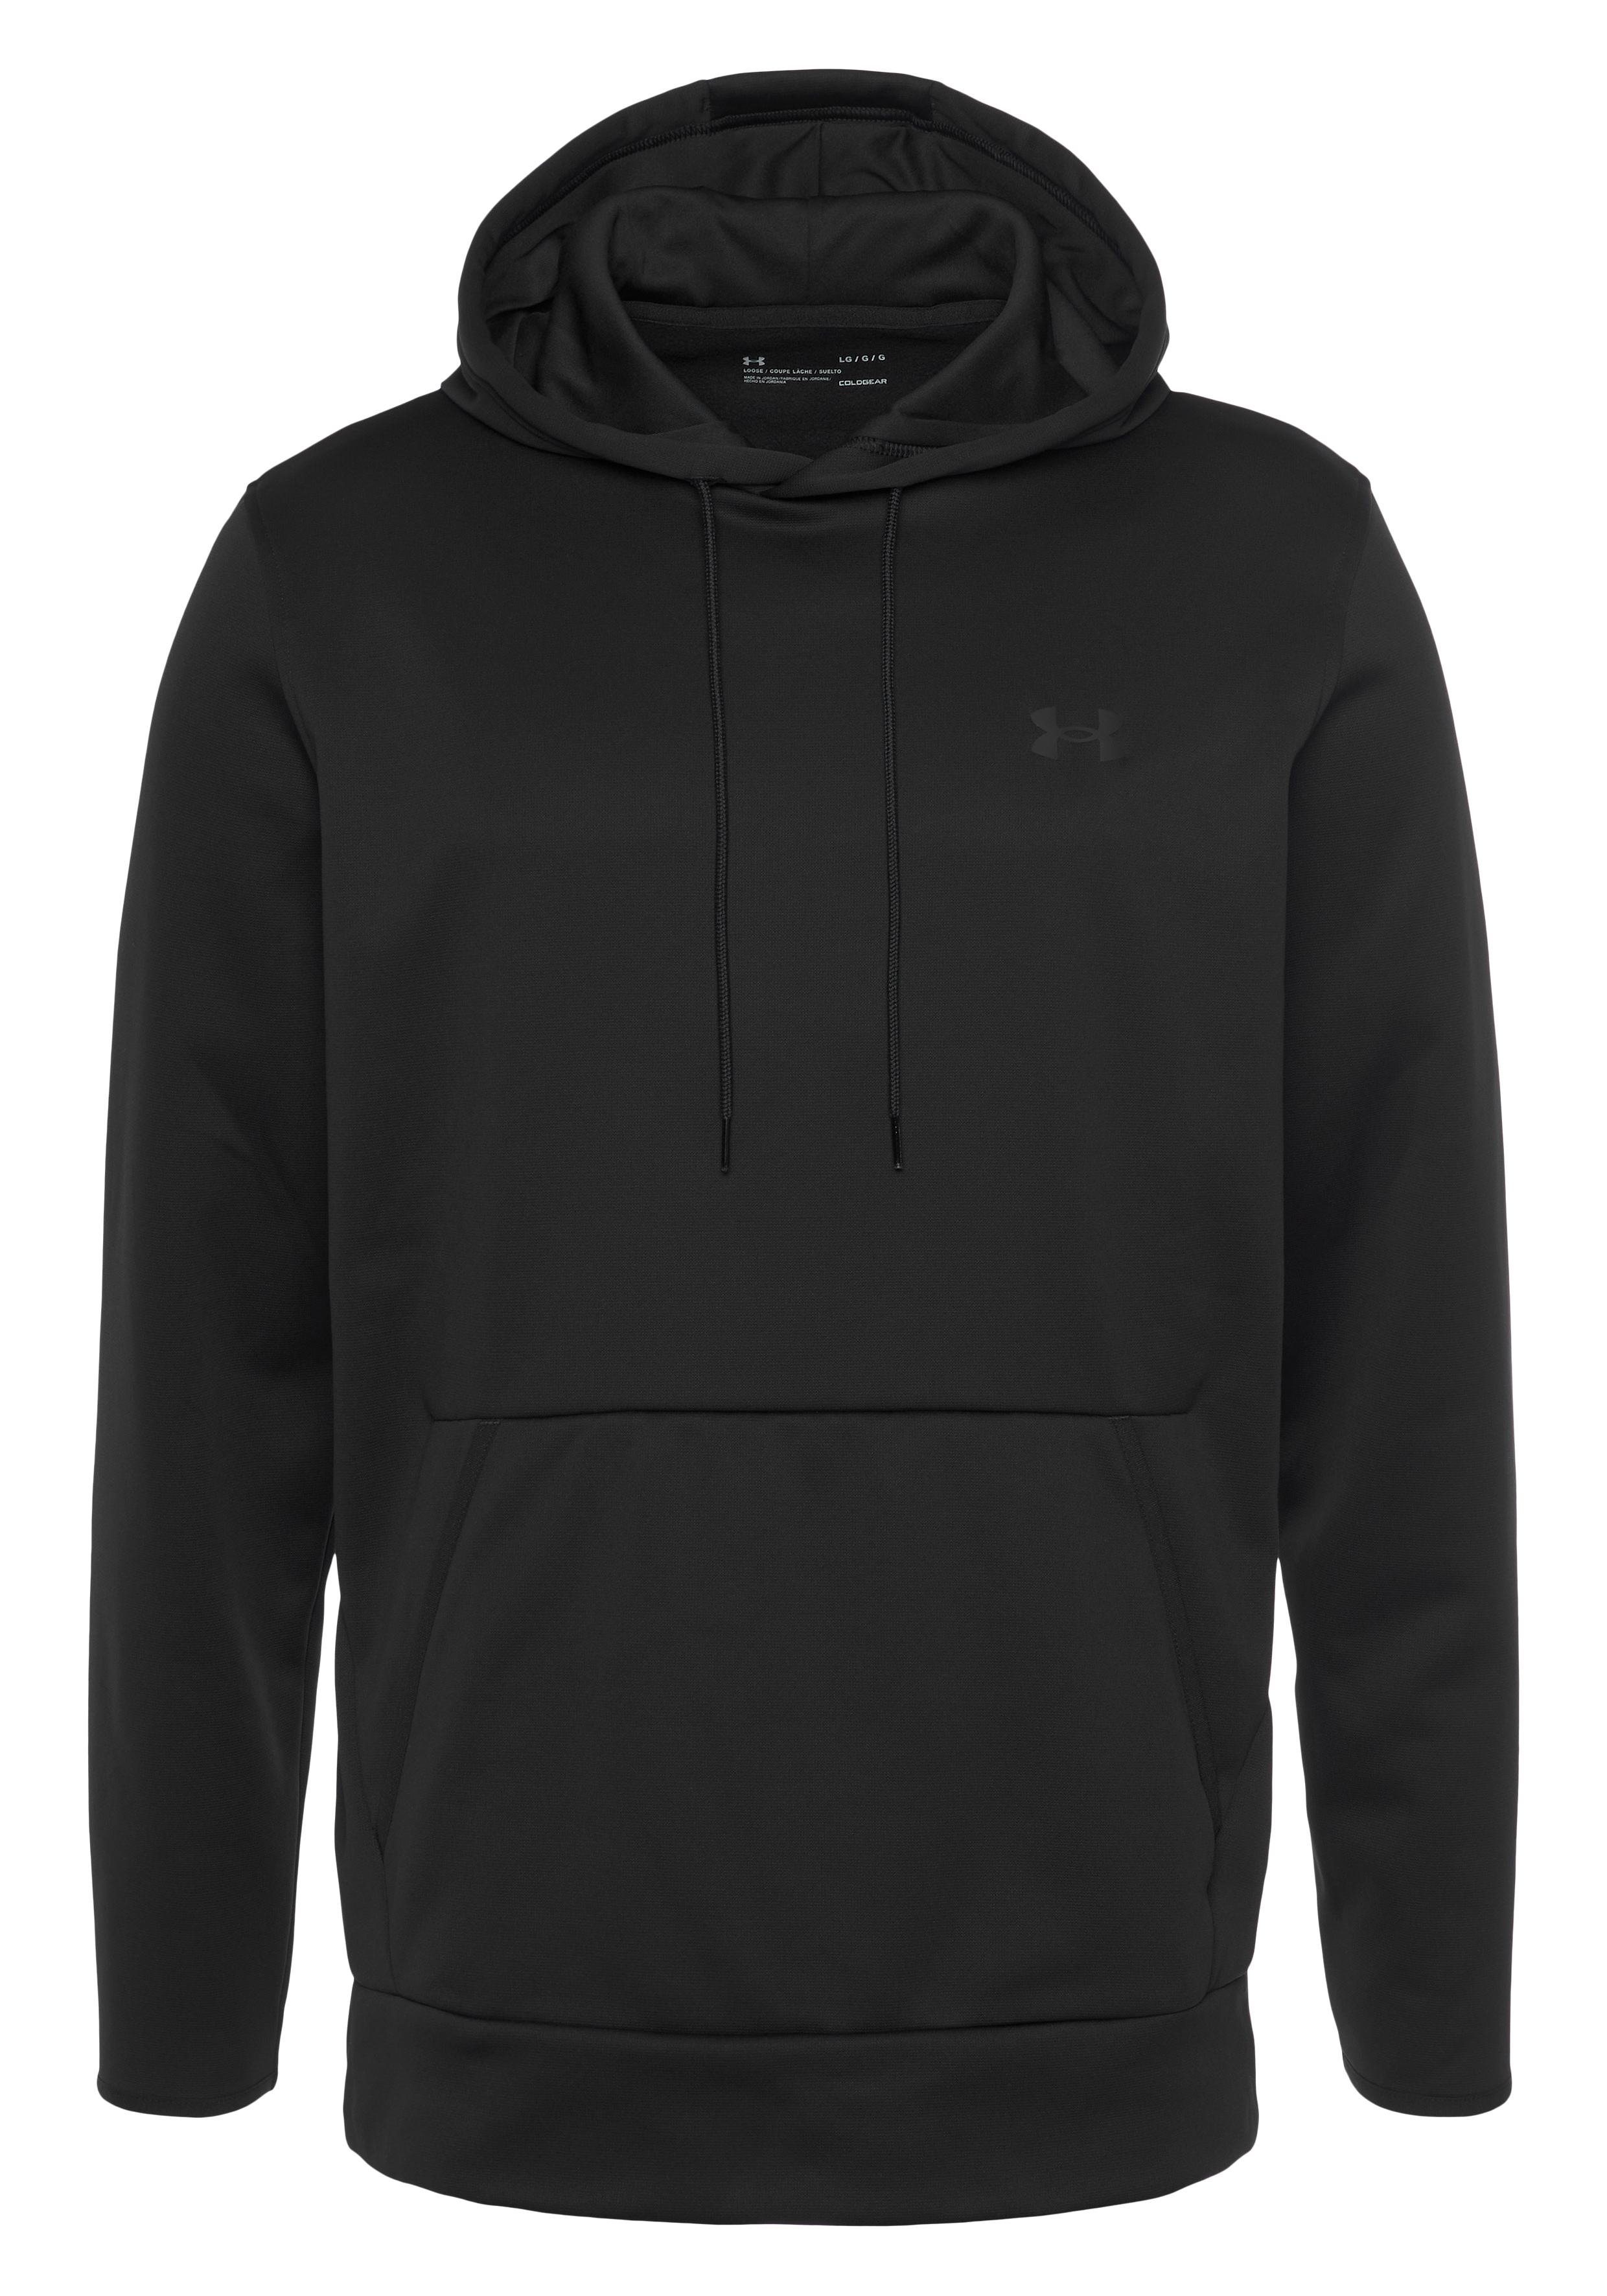 Under Armour Kapuzensweatshirt UA ARMOUR FLEECE HOODY schwarz Herren